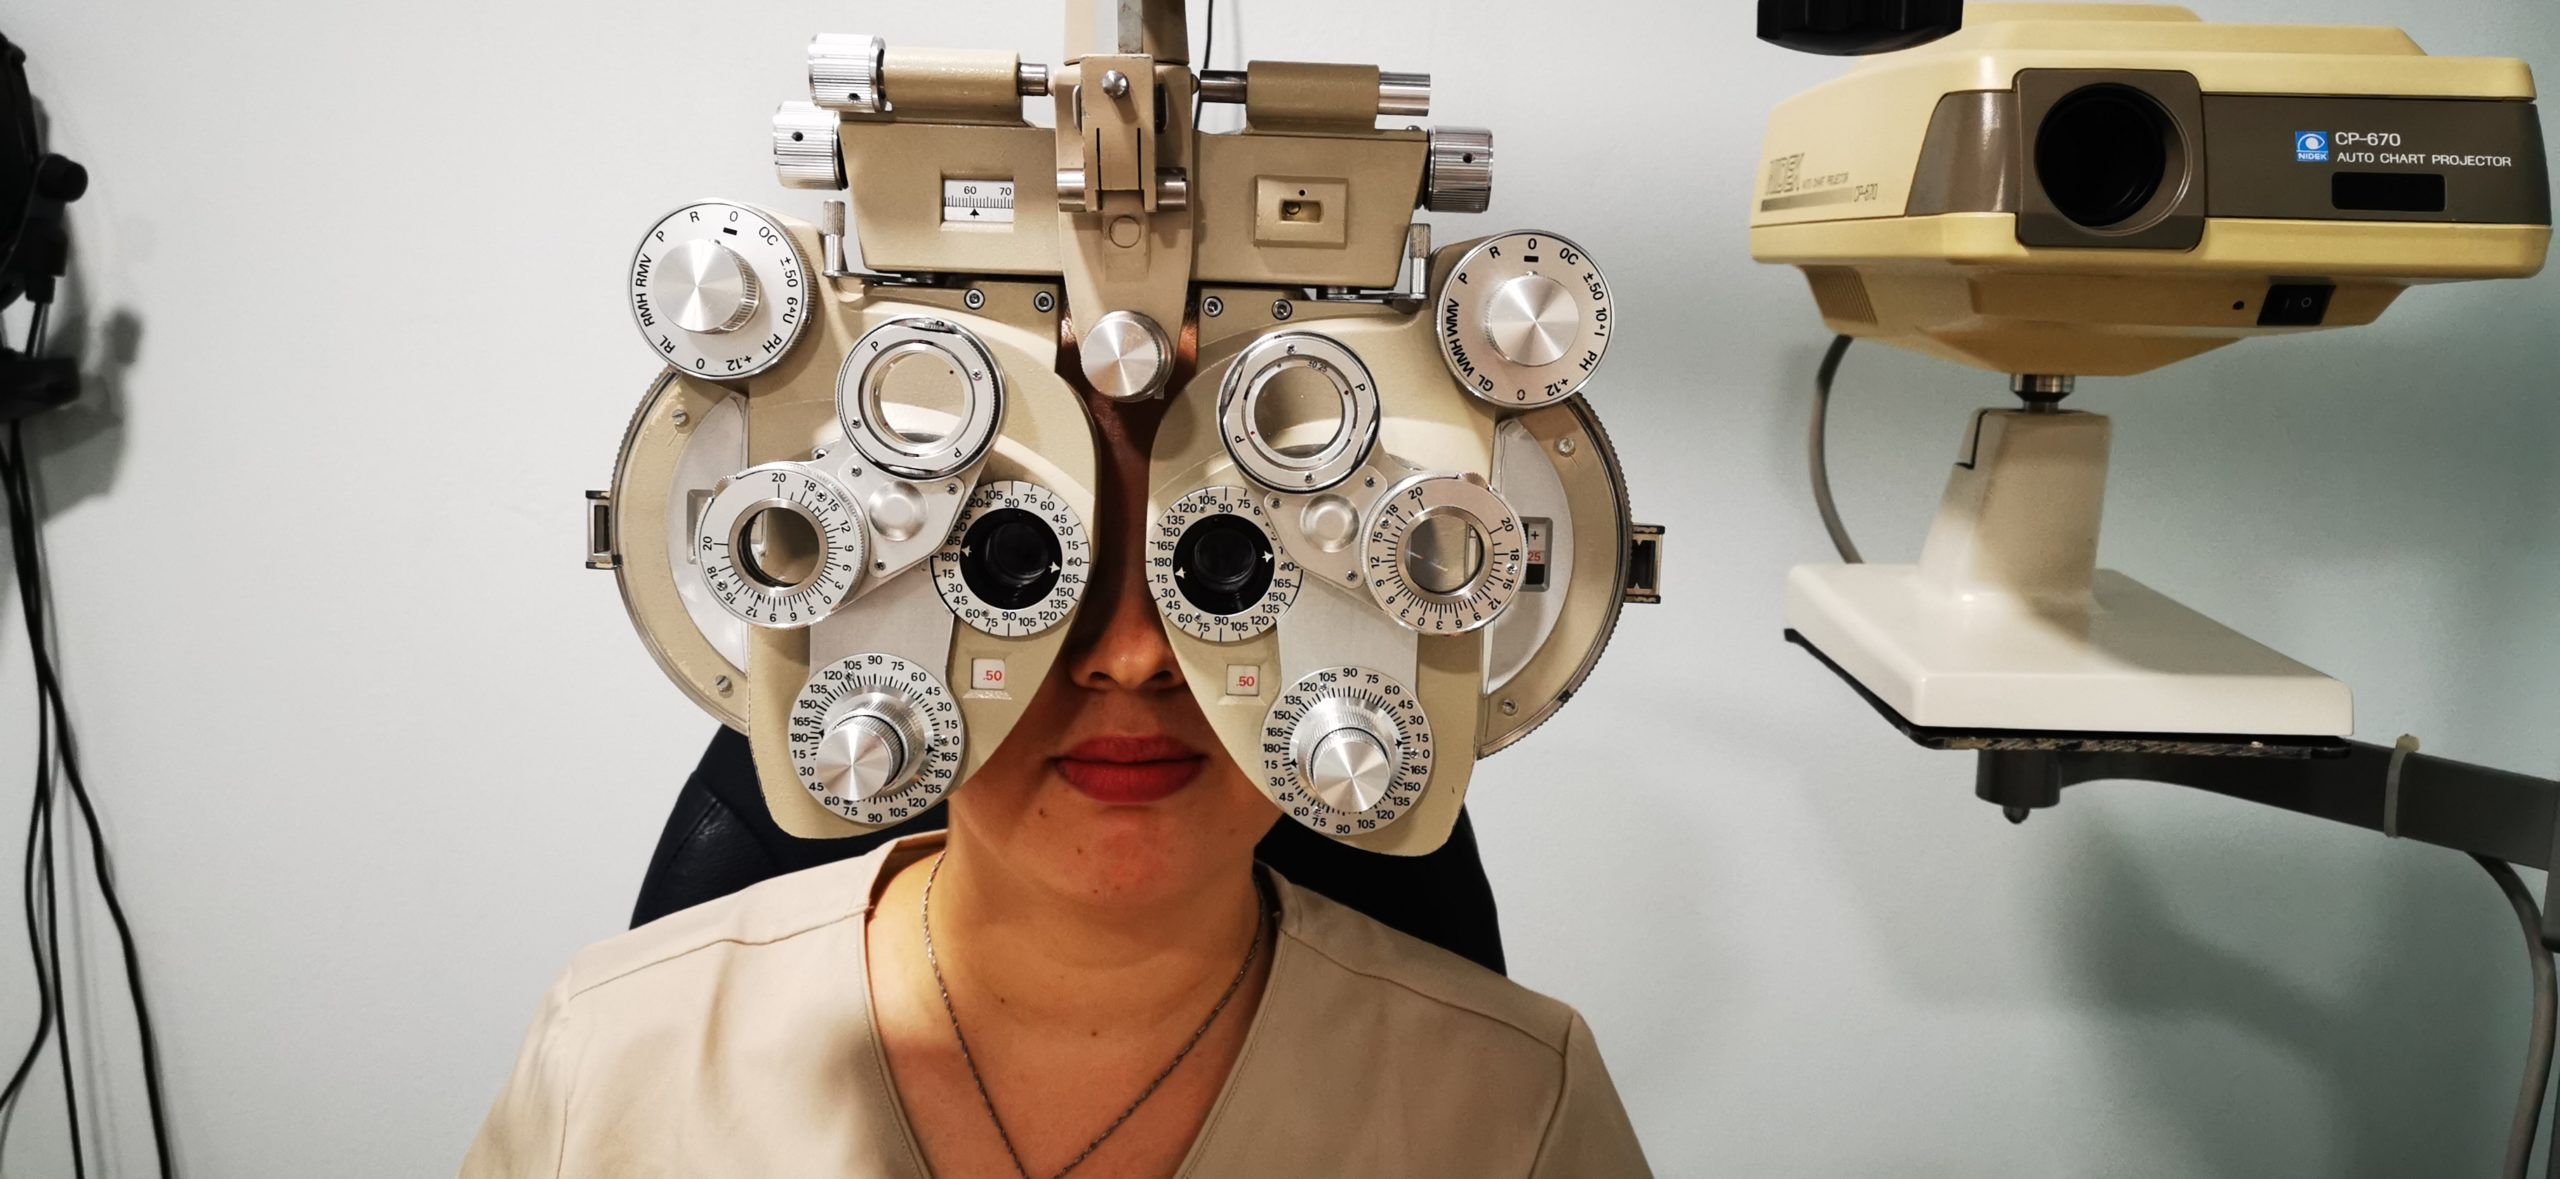 Óptica del Sol, optometry and ophthalmology services